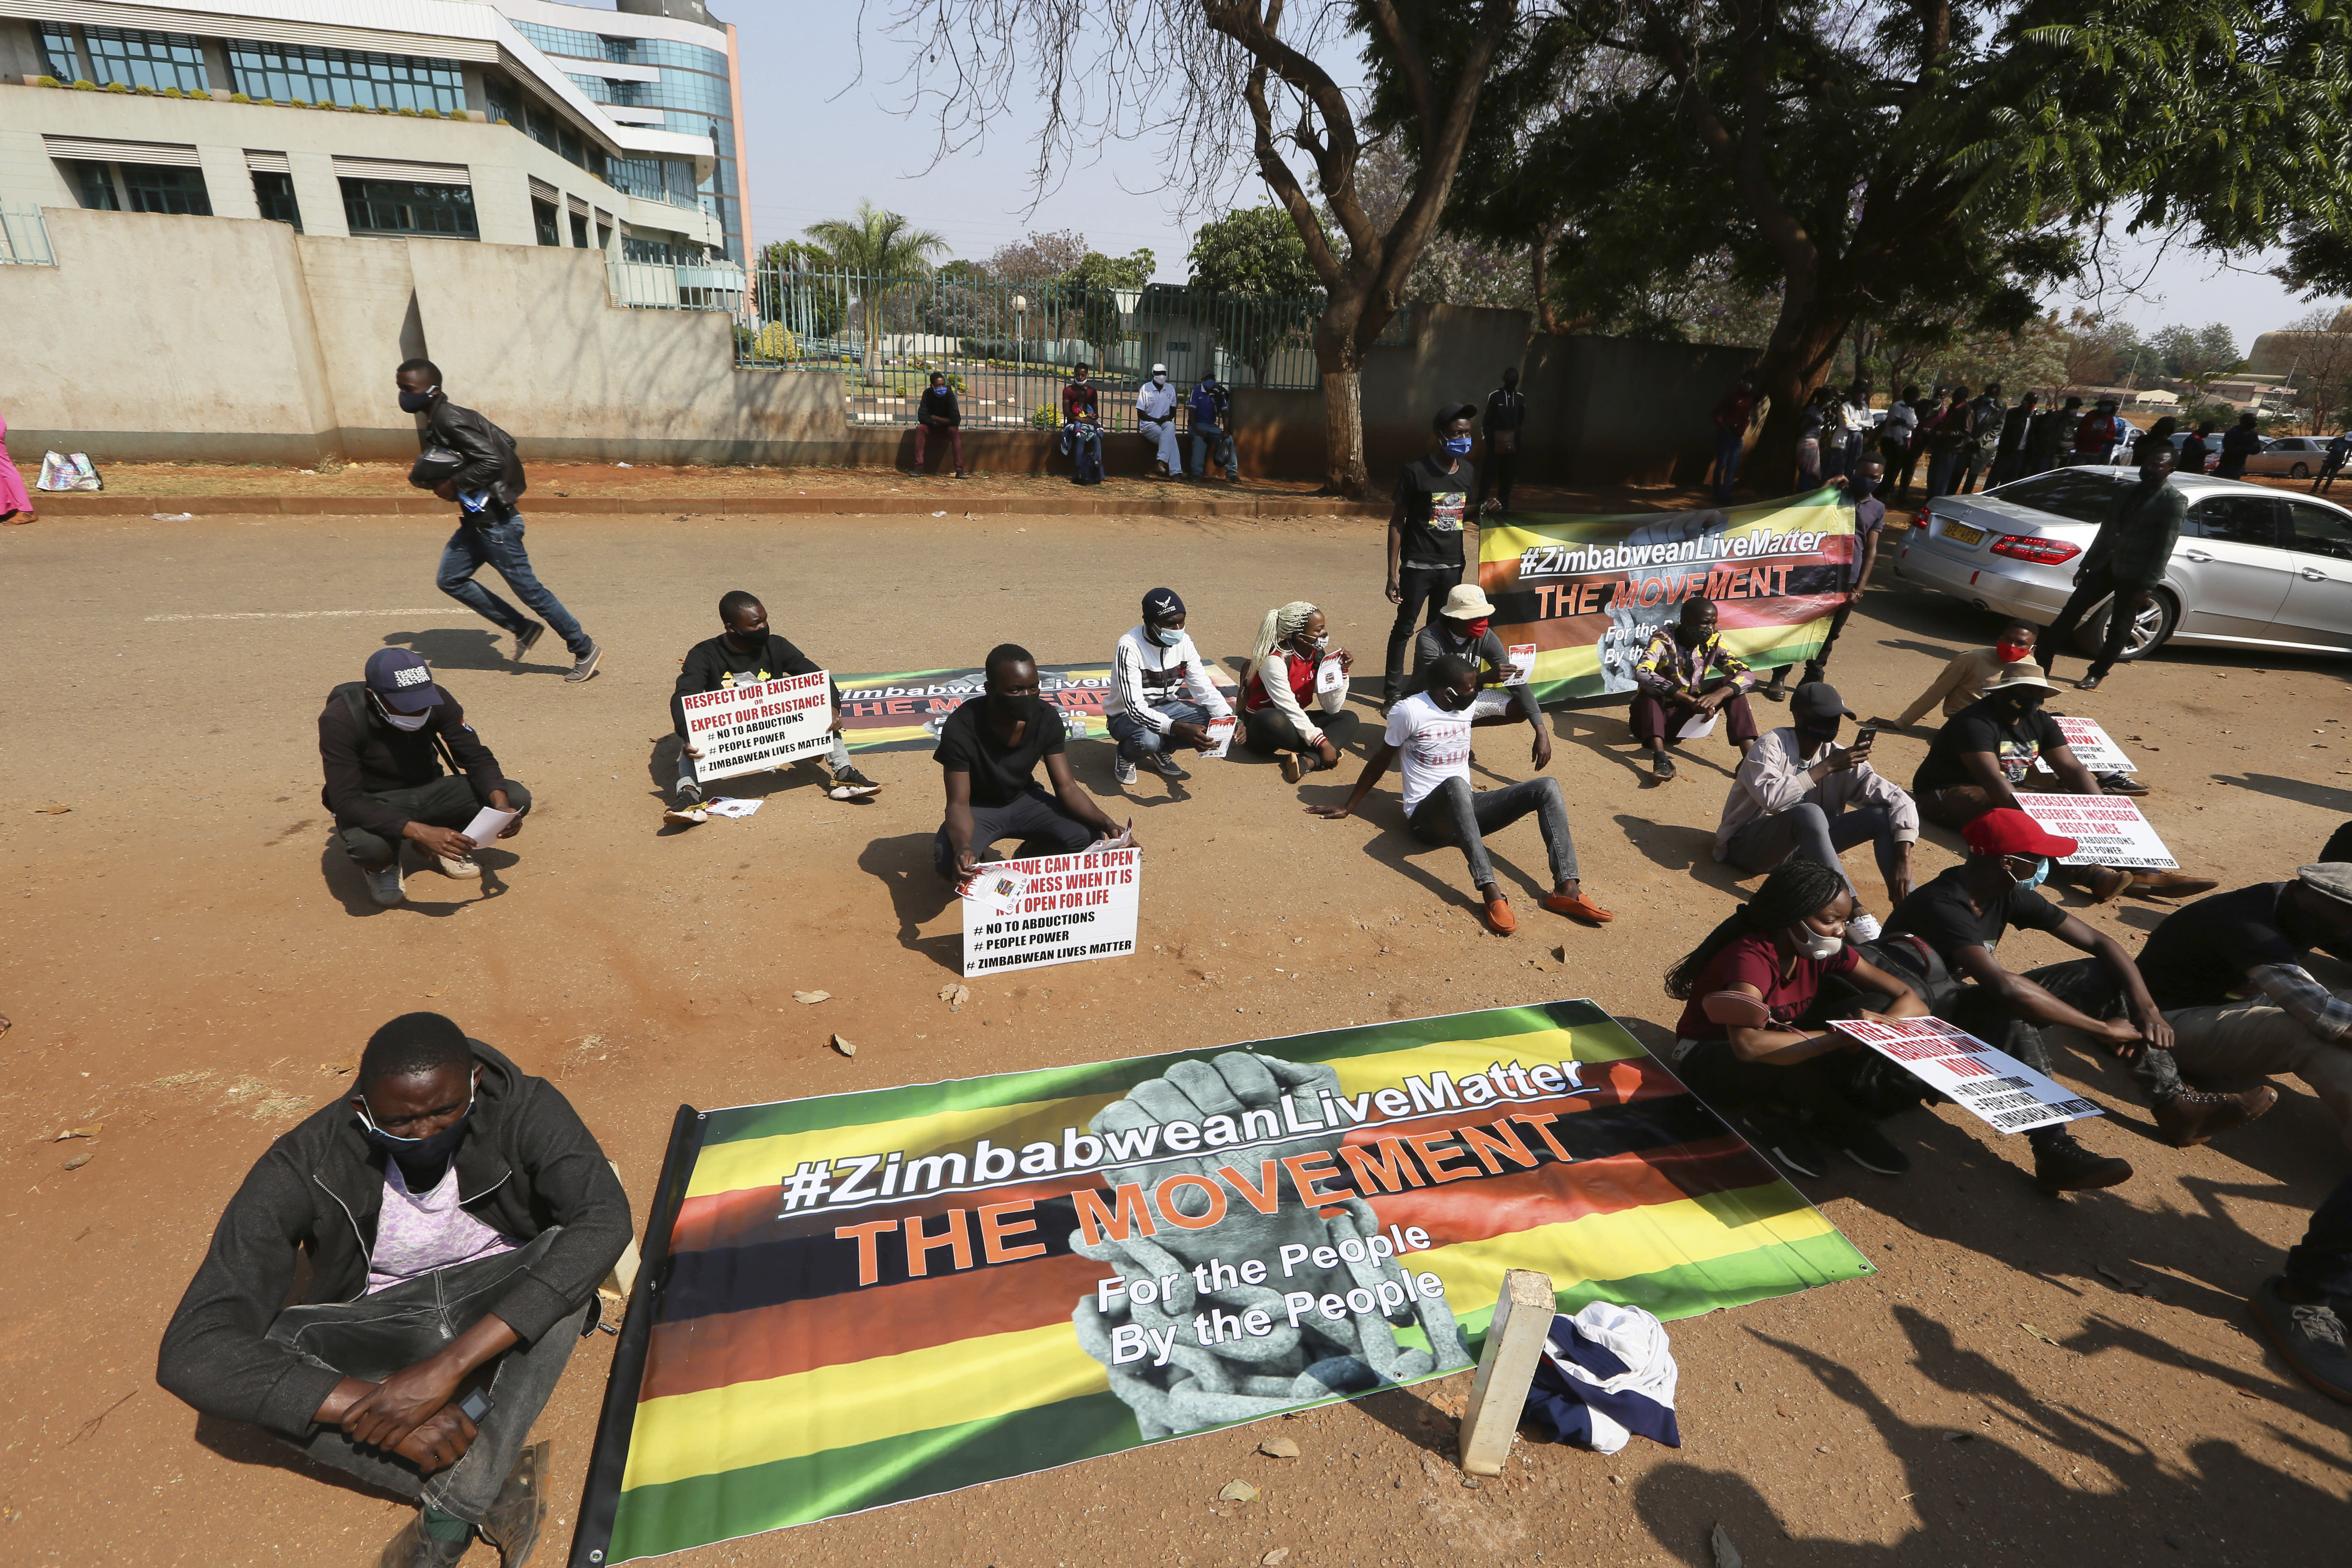 Students and human rights activists take part in a peaceful protest in Harare, Monday, Sept. 14, 2020. Human rights defenders say it appears the government is using restrictions imposed to combat COVID-19 to suppress political criticism. Opposition officials, human rights groups and some analysts accuse Mnangagwa of abusing the rights of critics, using tactics as harsh as his predecessor, the late Robert Mugabe. (AP Photo/Tsvangirayi Mukwazhi)